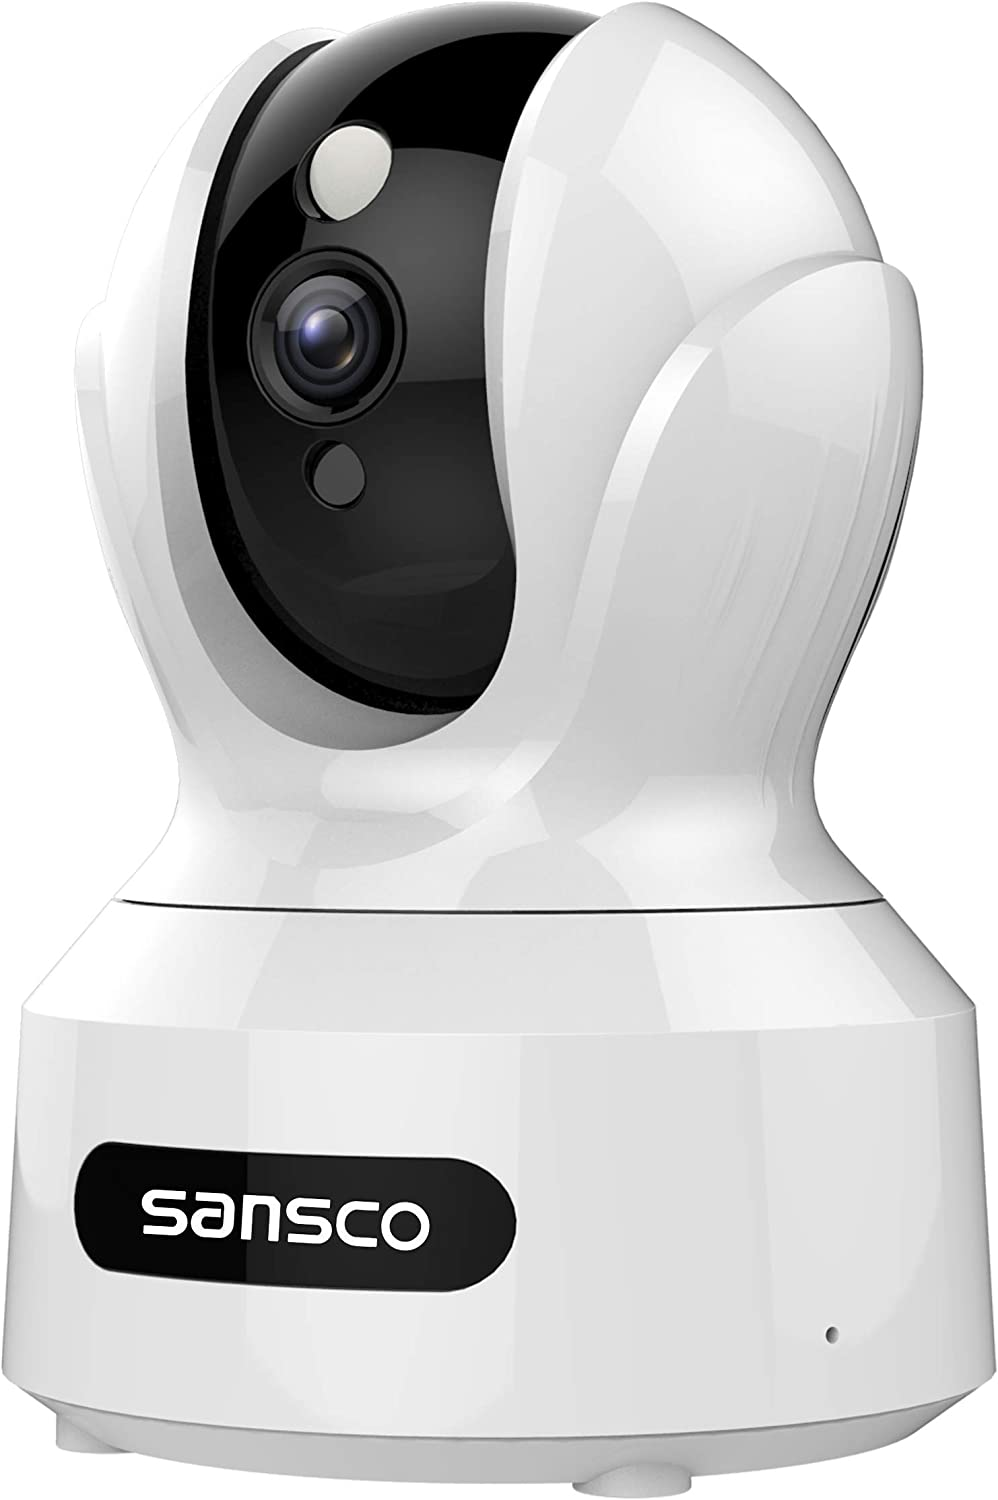 SANSCO Indoor Wireless WiFi Security Camera Full HD 2MP 1080p Home Monitor Surveillance Network IP Camera for Pet Baby with IR Night Vision, Motion Detection Push Alerts and Two-Way Audio – White